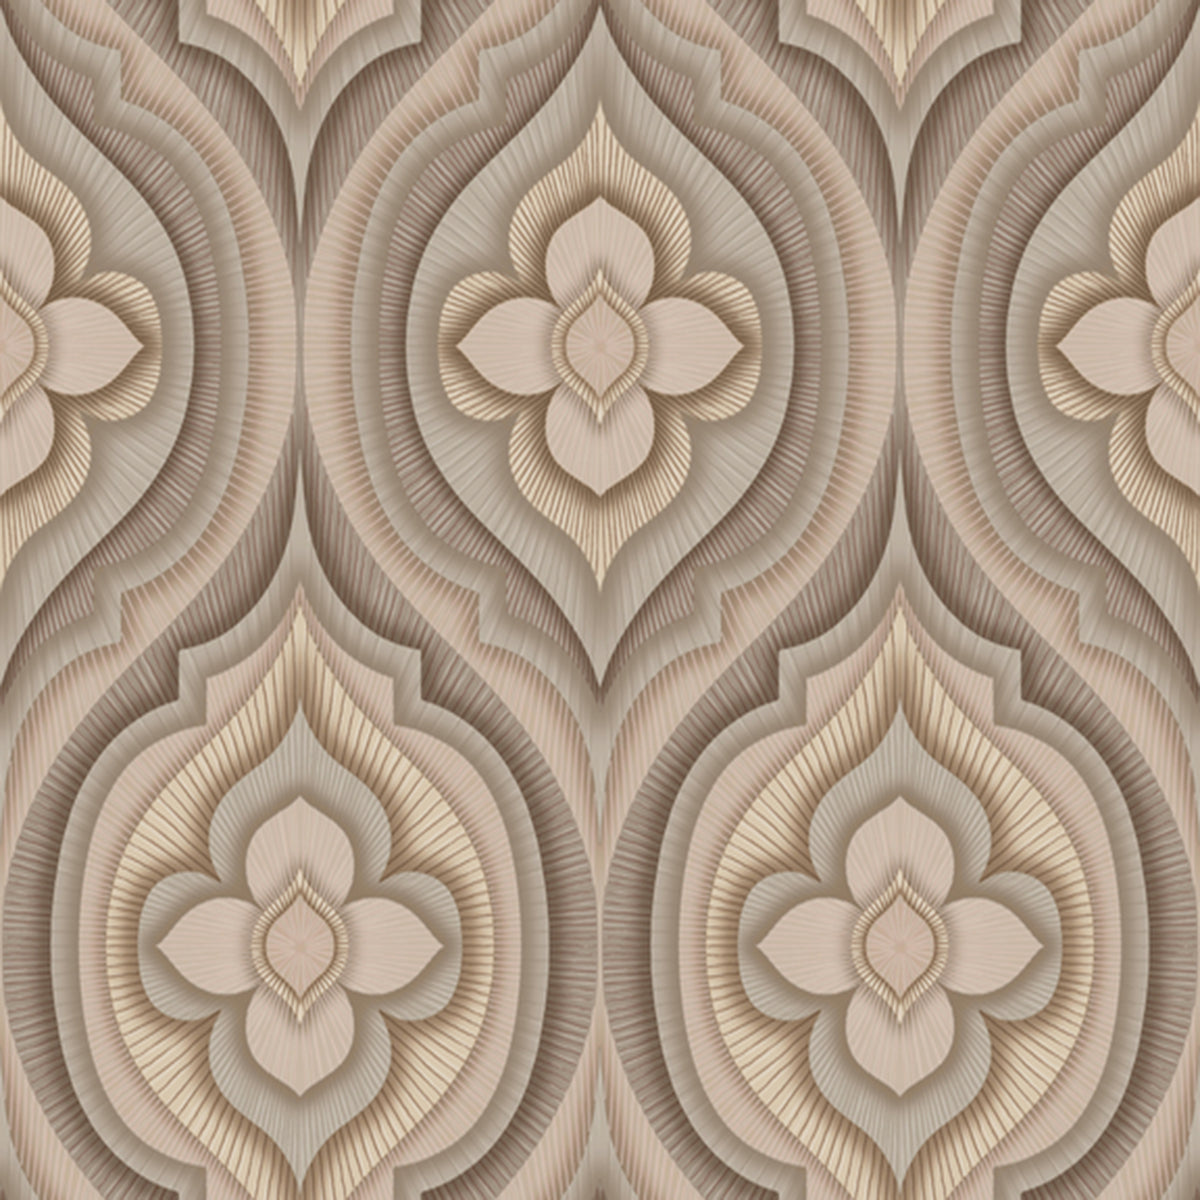 Dream On Rhapsody Wallpaper in Brown